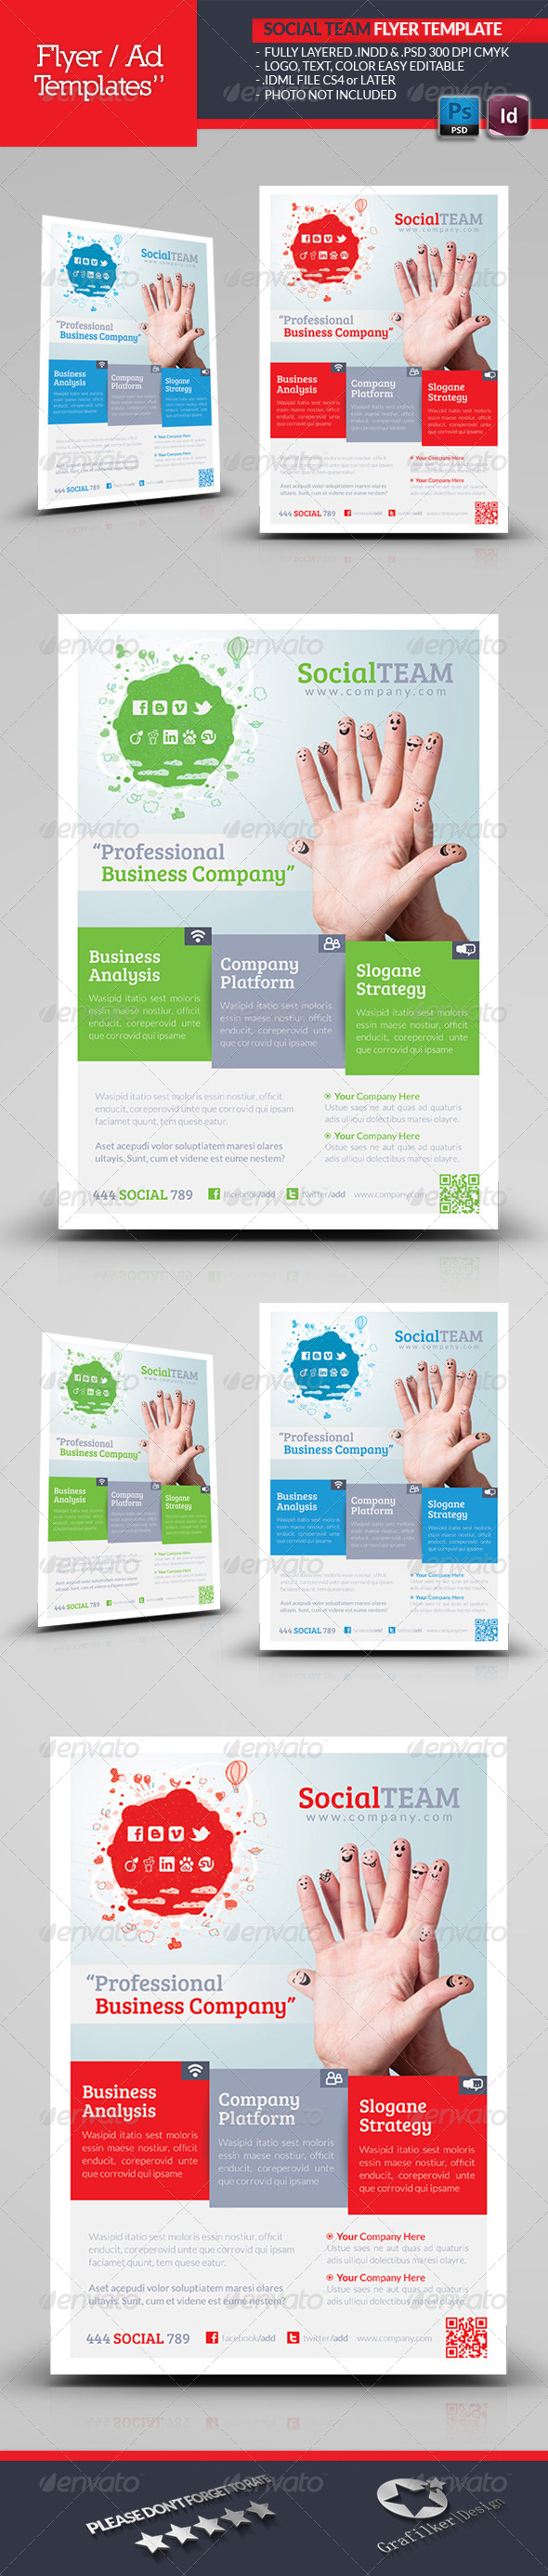 Social Team Flyer Template - Corporate Flyers